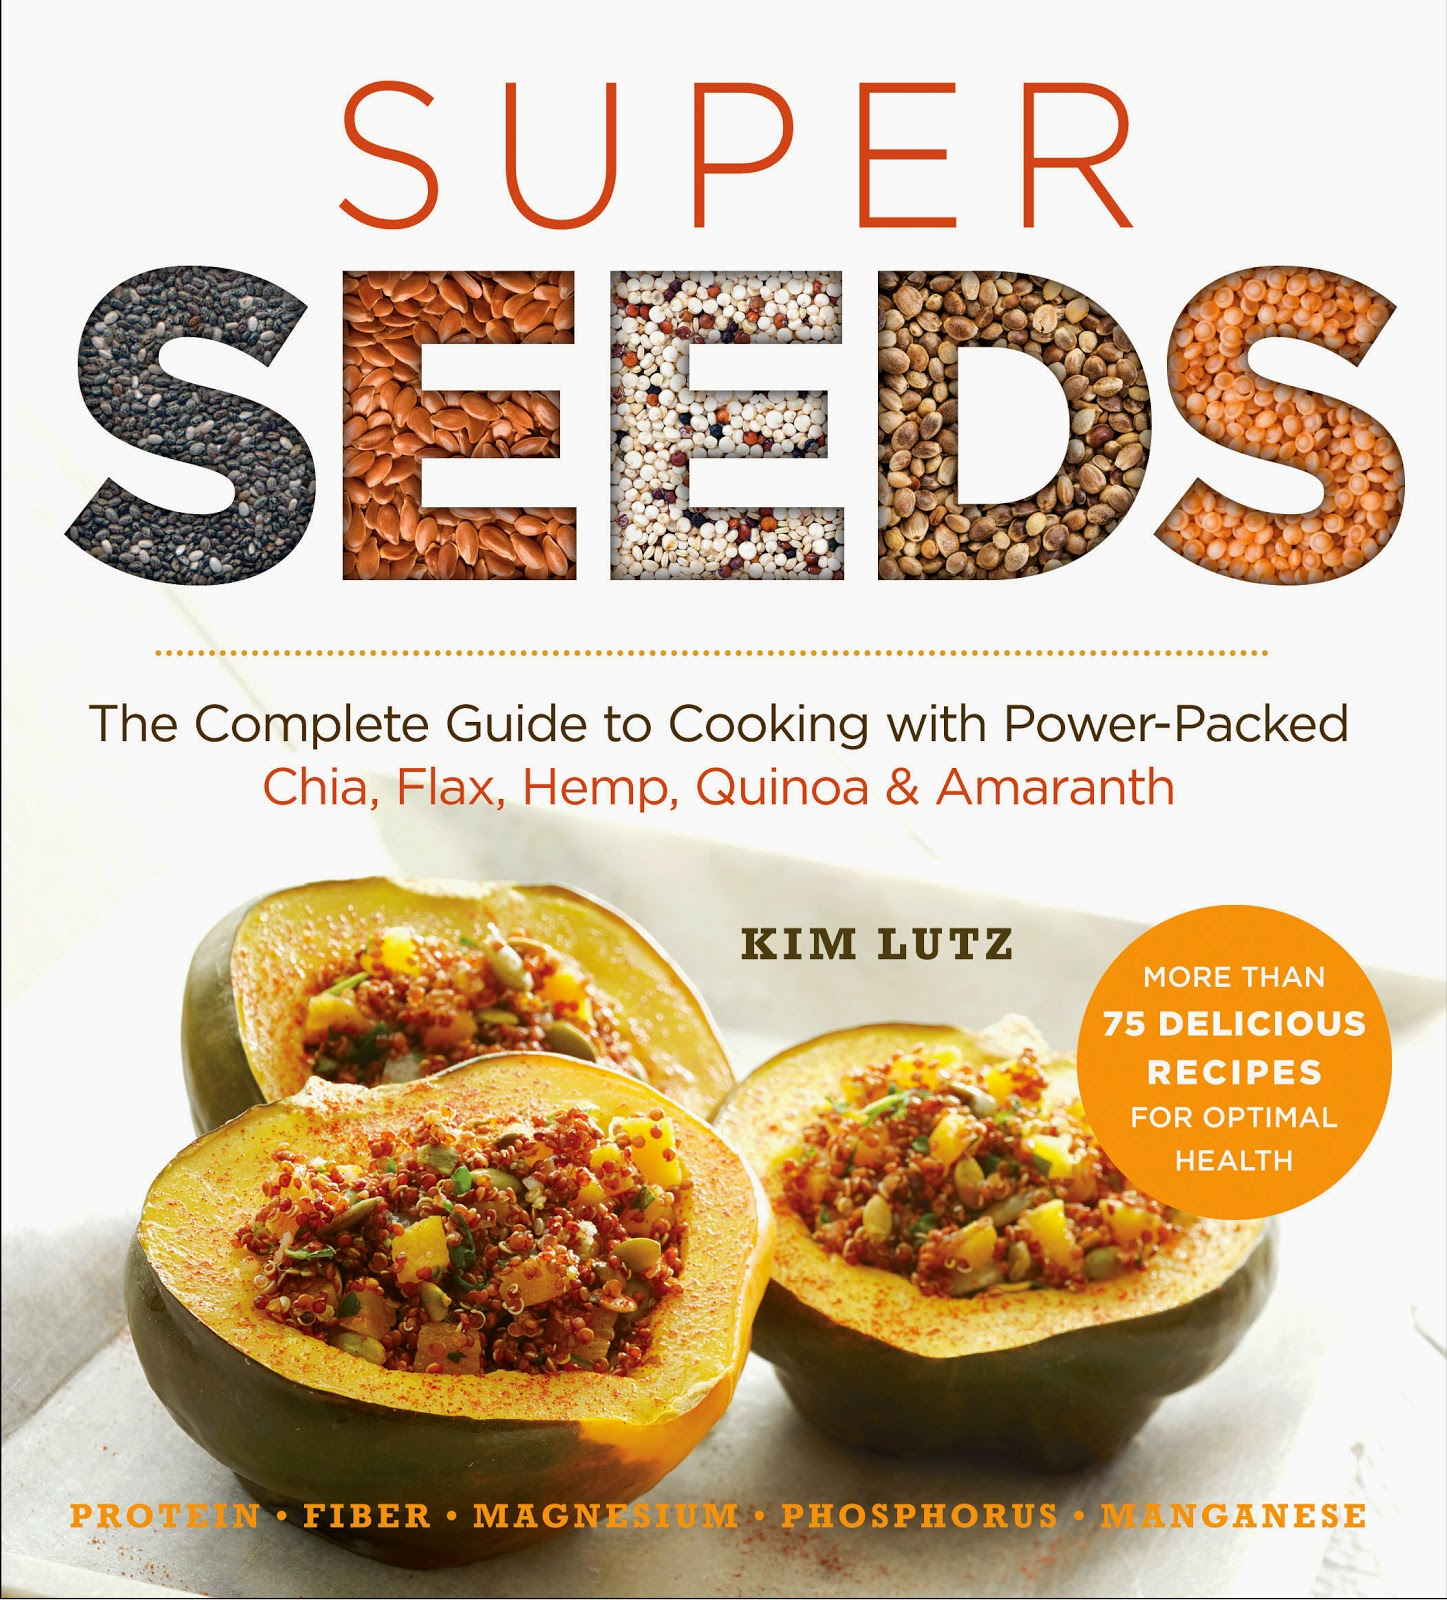 Super Seeds: The Complete Guide to Cooking with Power-Packed Chia, Flax Hemp, Quinoa & Amaranth